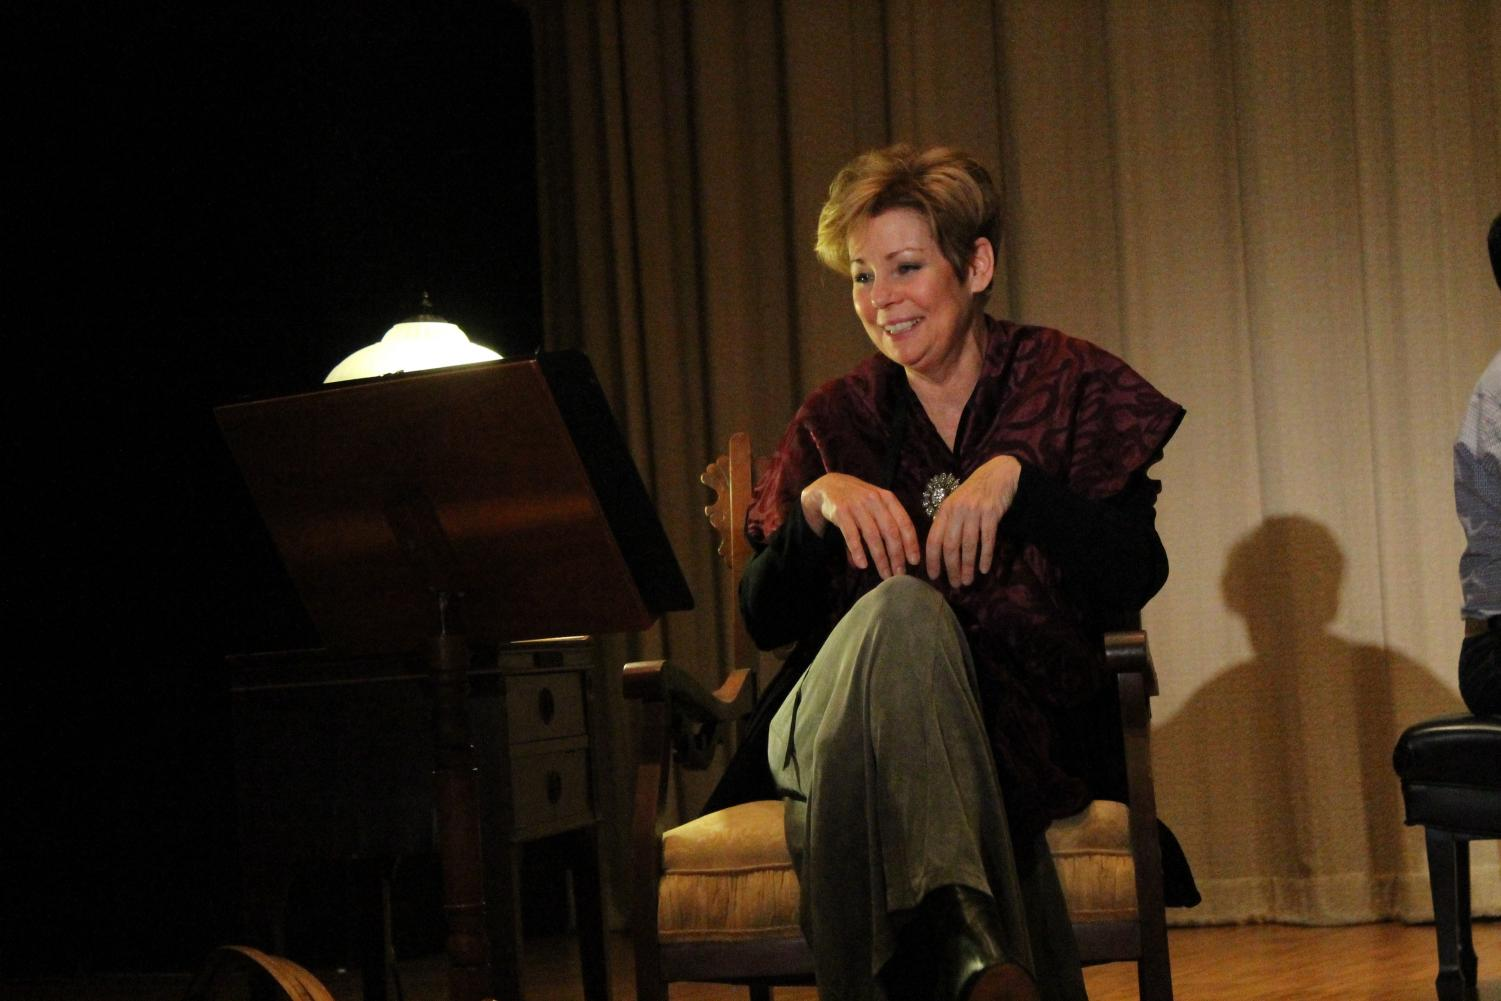 """Tammy Hensrud performed as Nadia Boulanger for Mina Fisher's """"Nadia,"""" the story of the renowned music educator."""